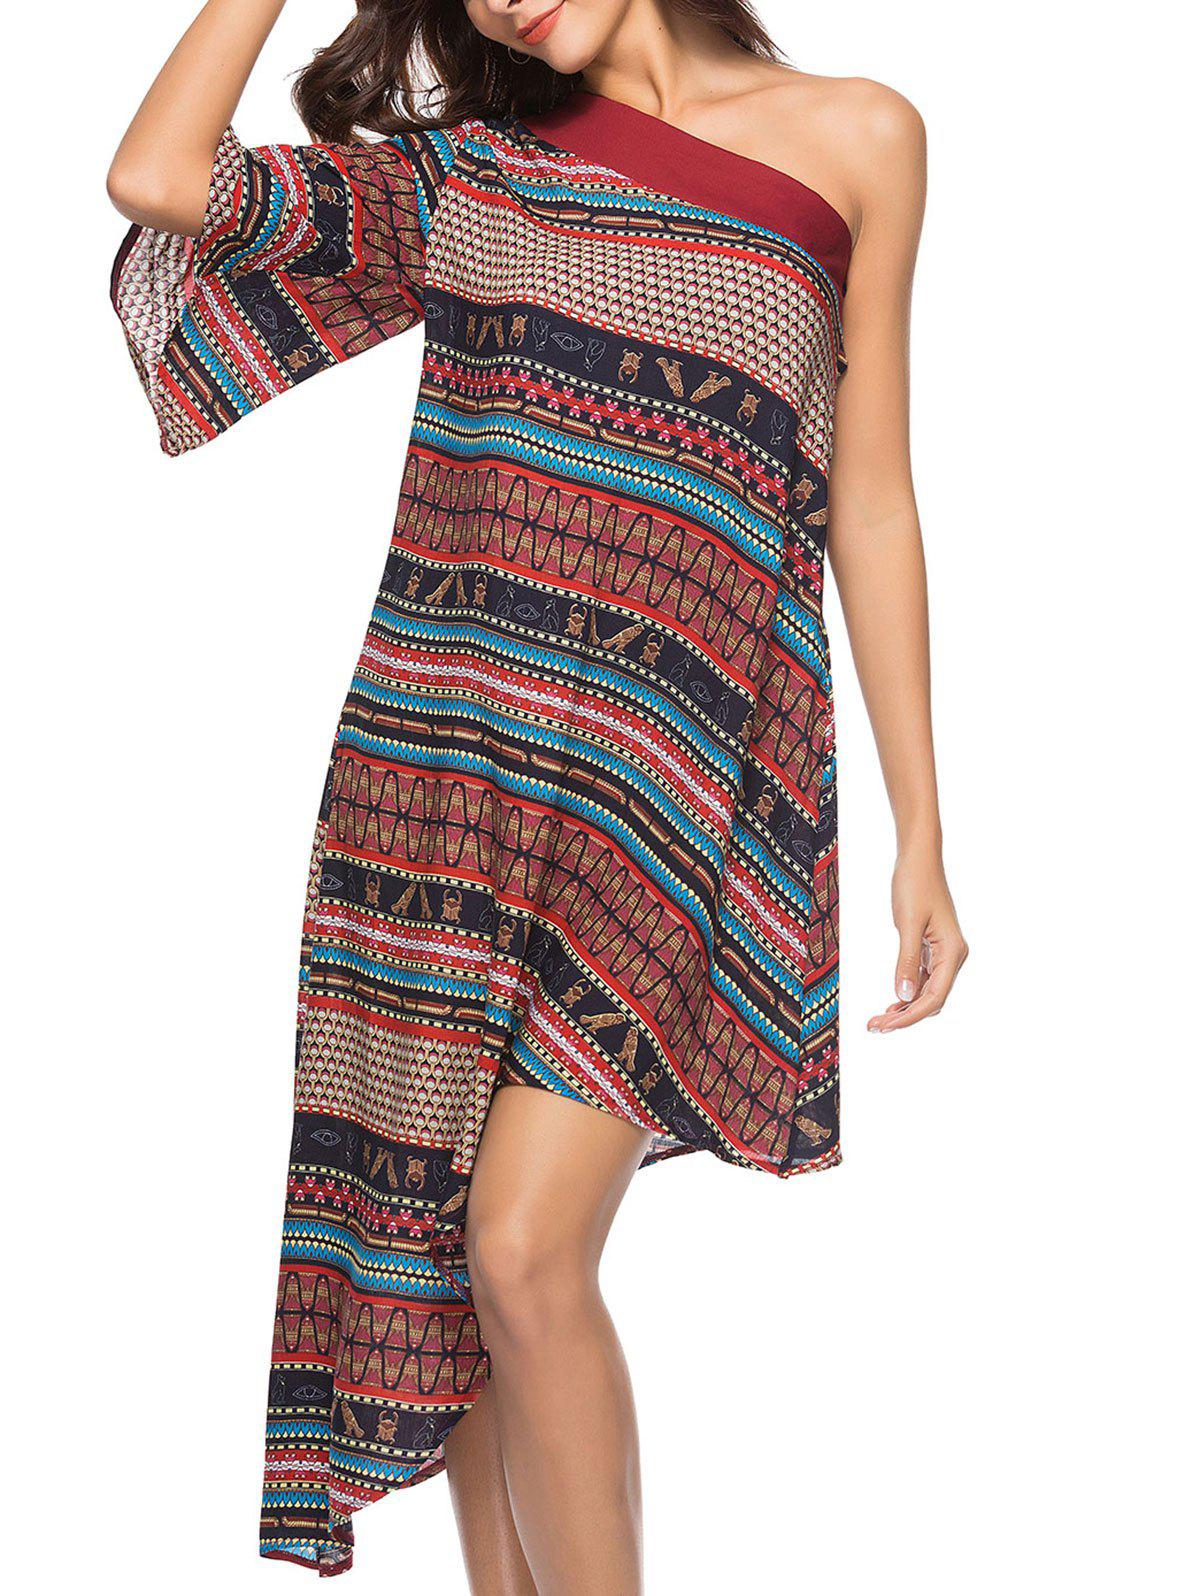 49% OFF   2019 Bohemian One Shoulder Ethnic Print Midi Dress ... 958c1a691